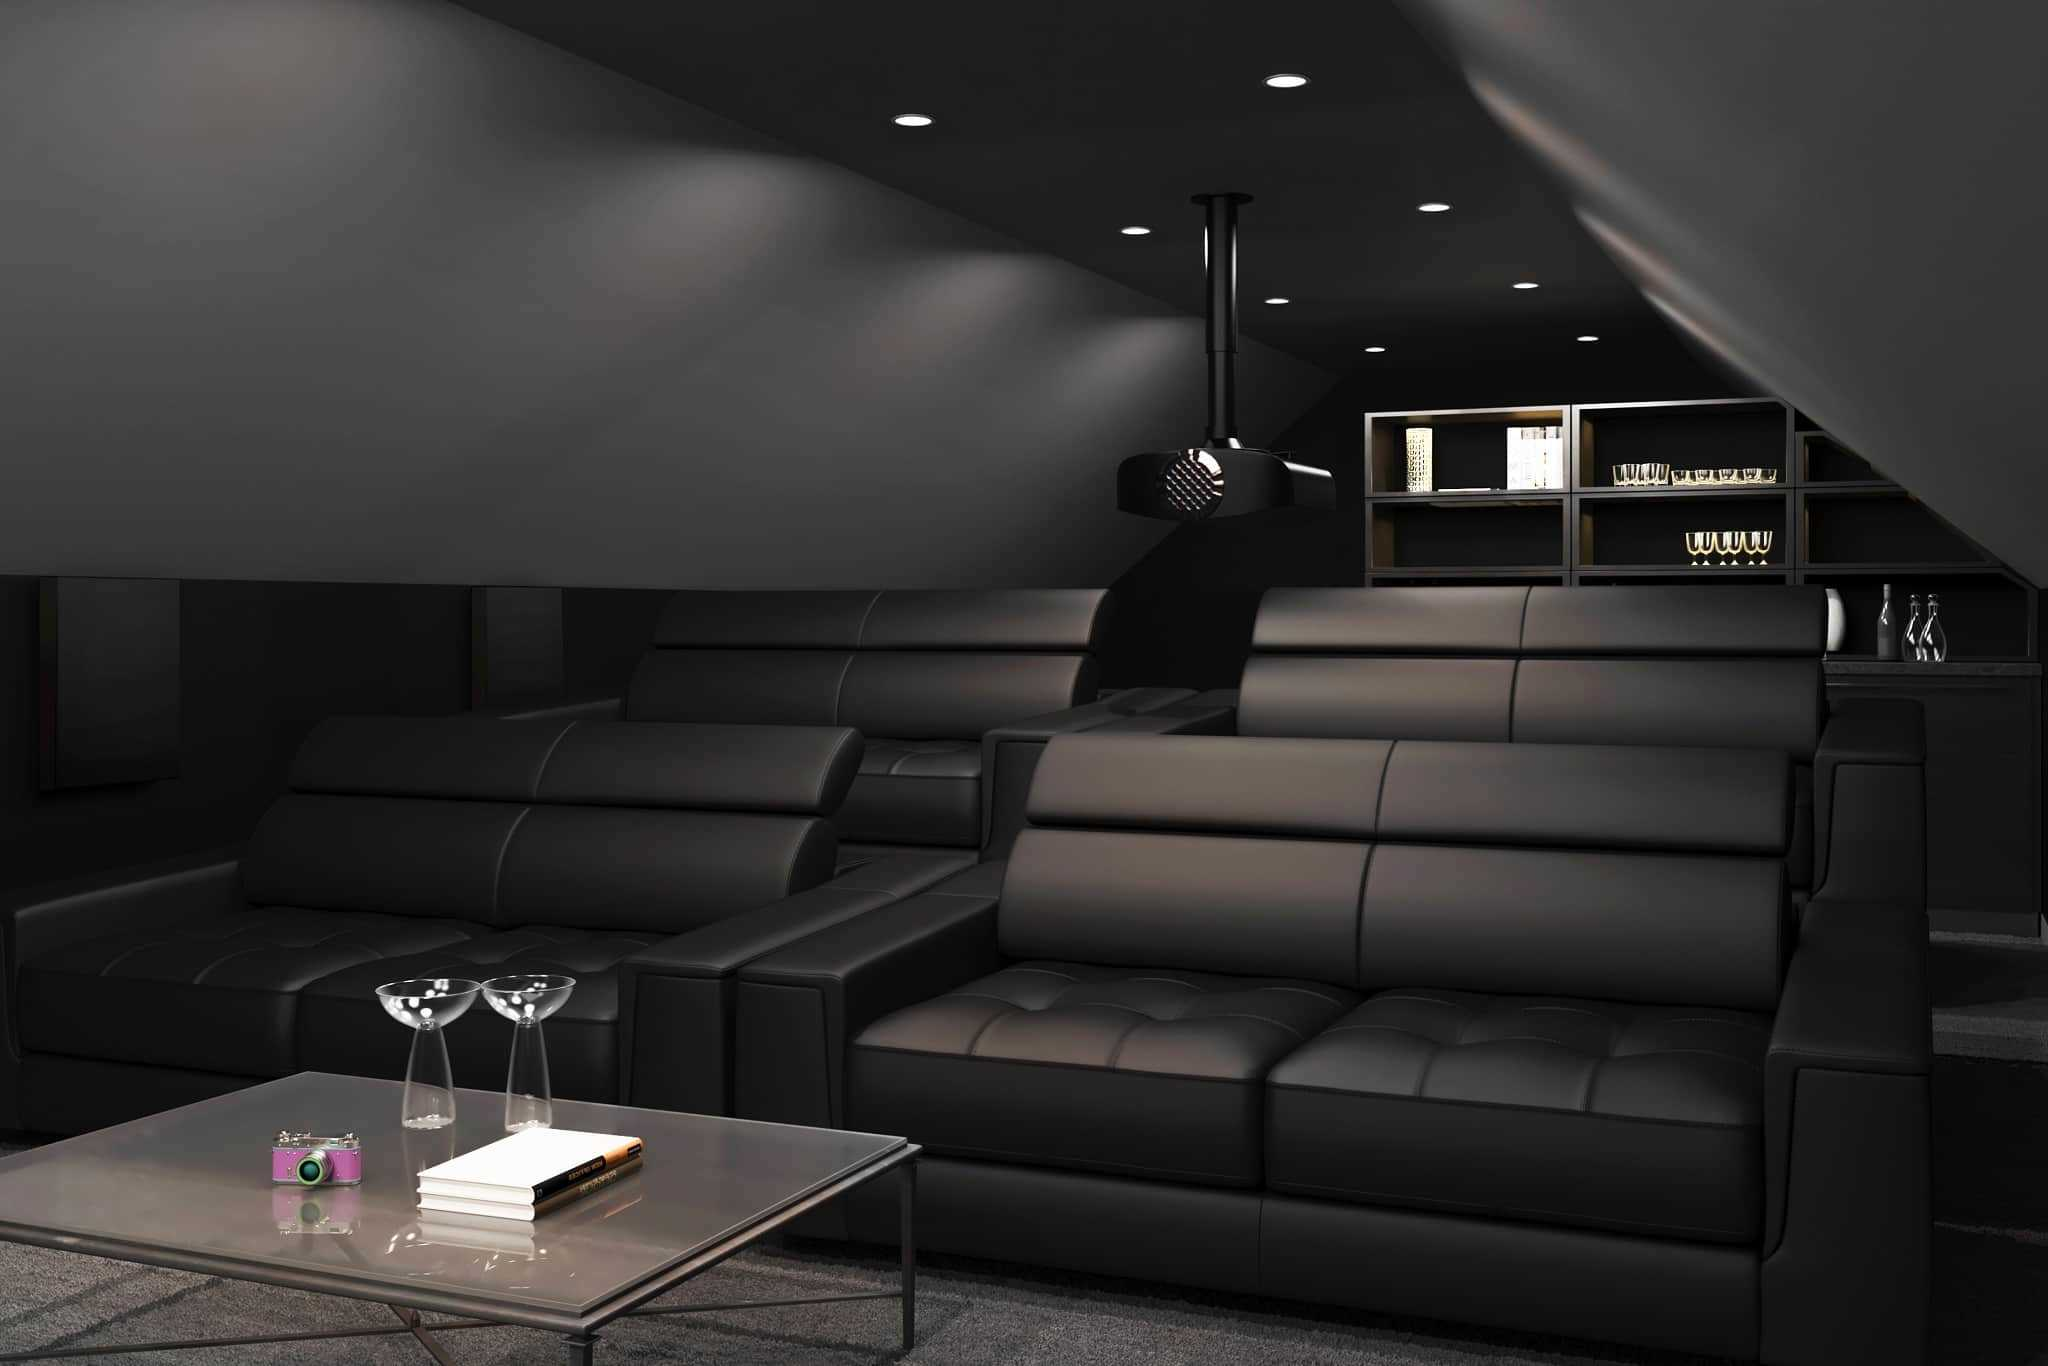 Loft Home Cinema in Surrey - Rear View